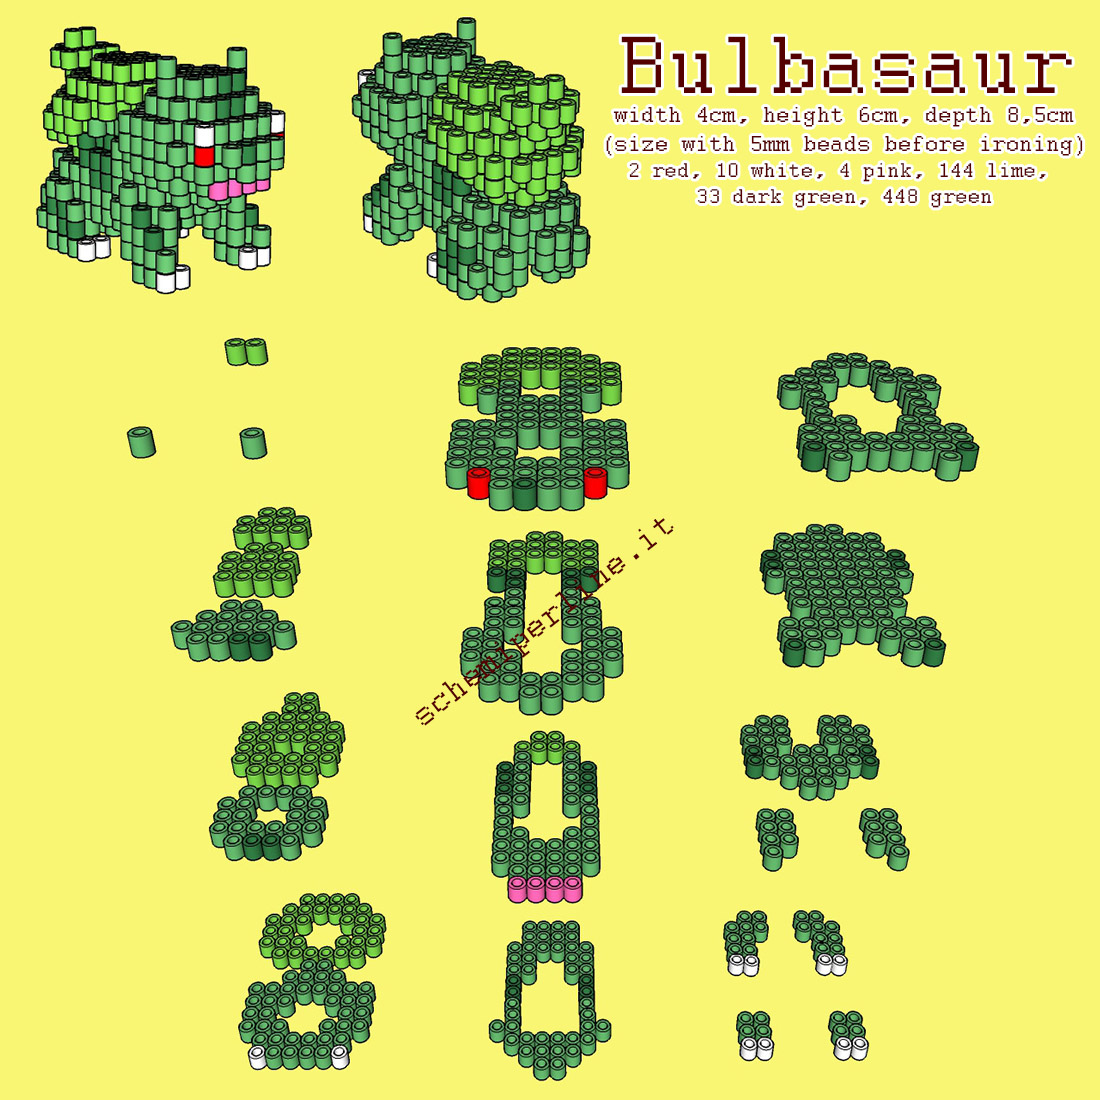 Il Pokemon Bulbasaur schema 3D con le perline da stirare Hama Beads